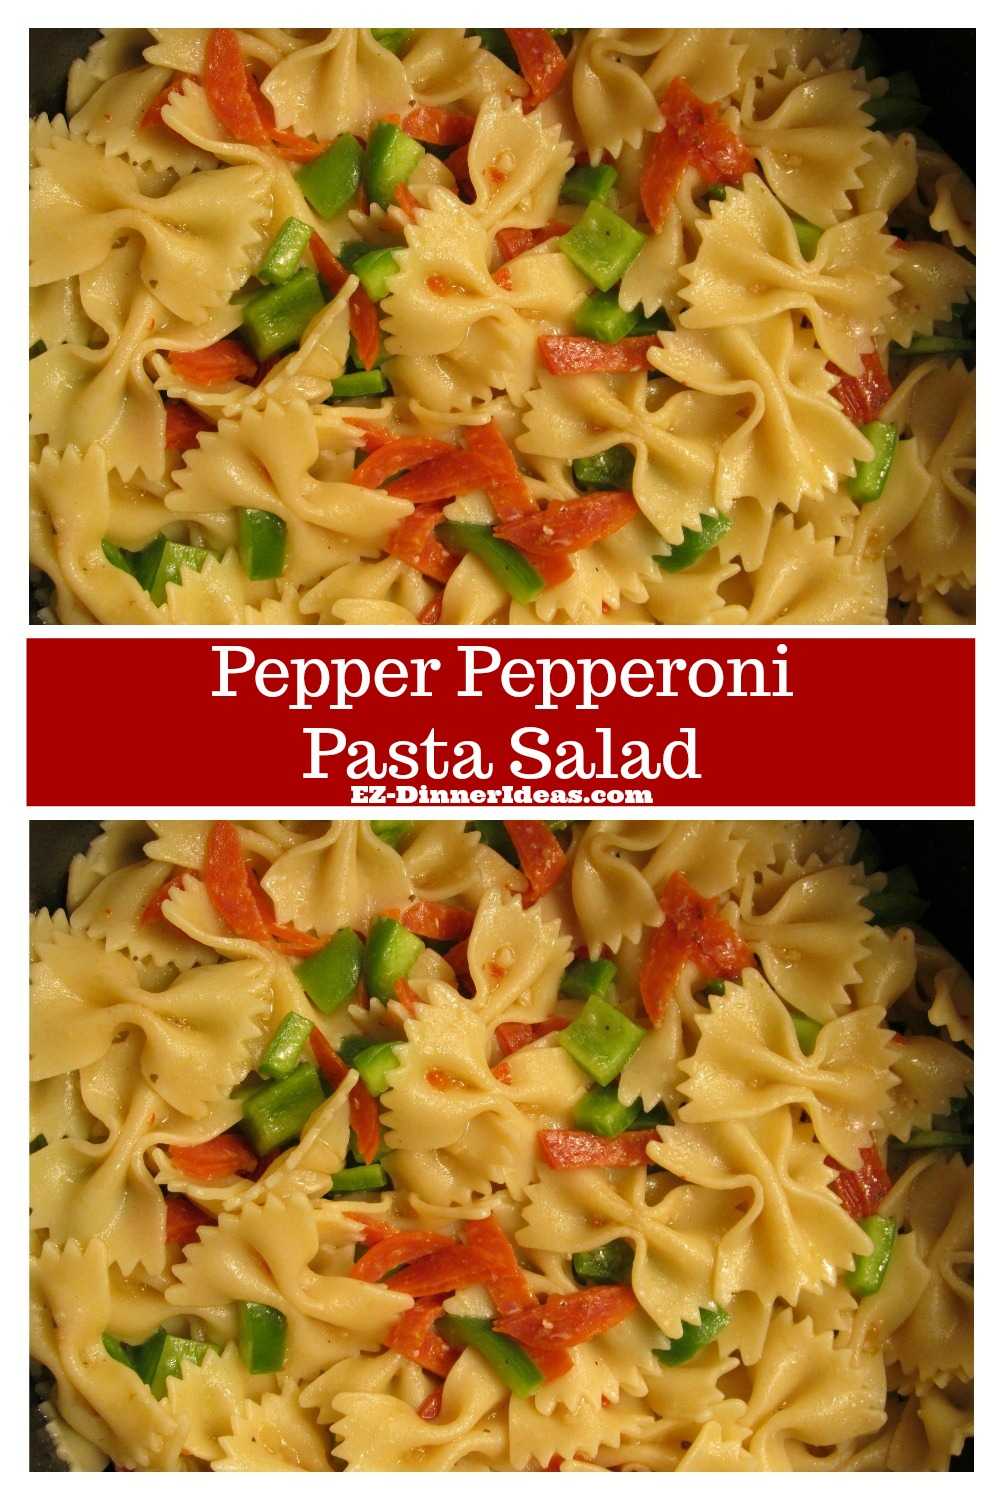 An easy salad meal is great for any occasions.  You can serve this pepper pepperoni pasta salad in a dinner party or even on the road if you are always on the run from one place to another.